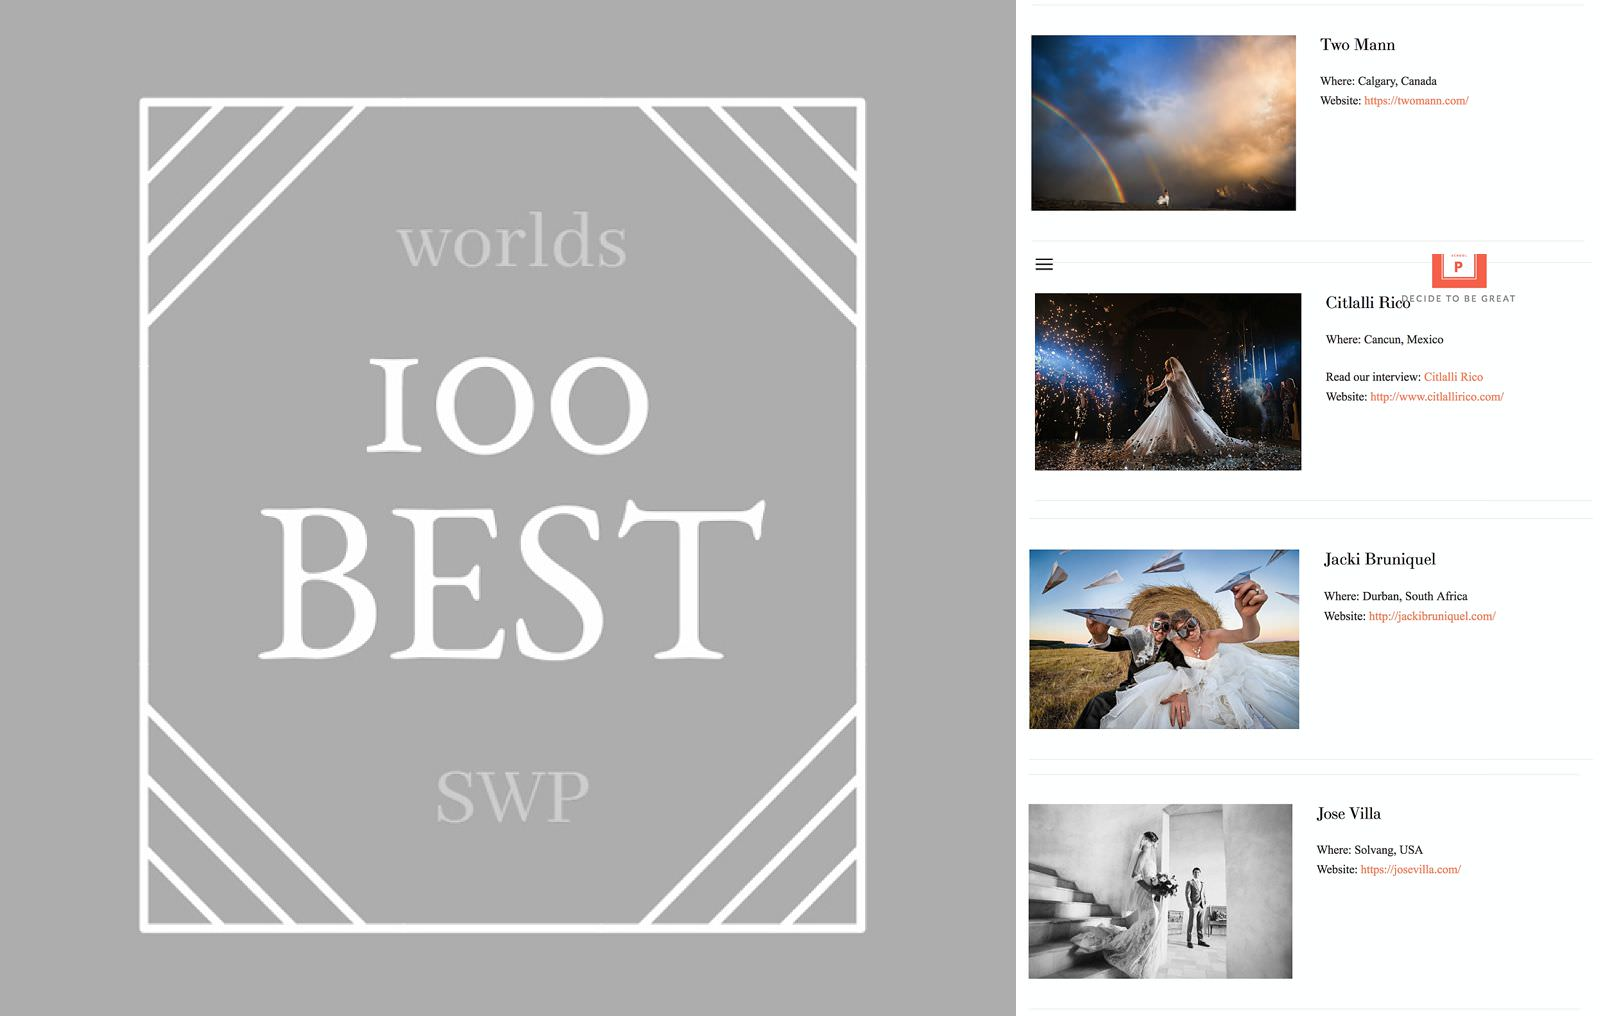 100 best wedding photographers in the world Jacki Bruniquel